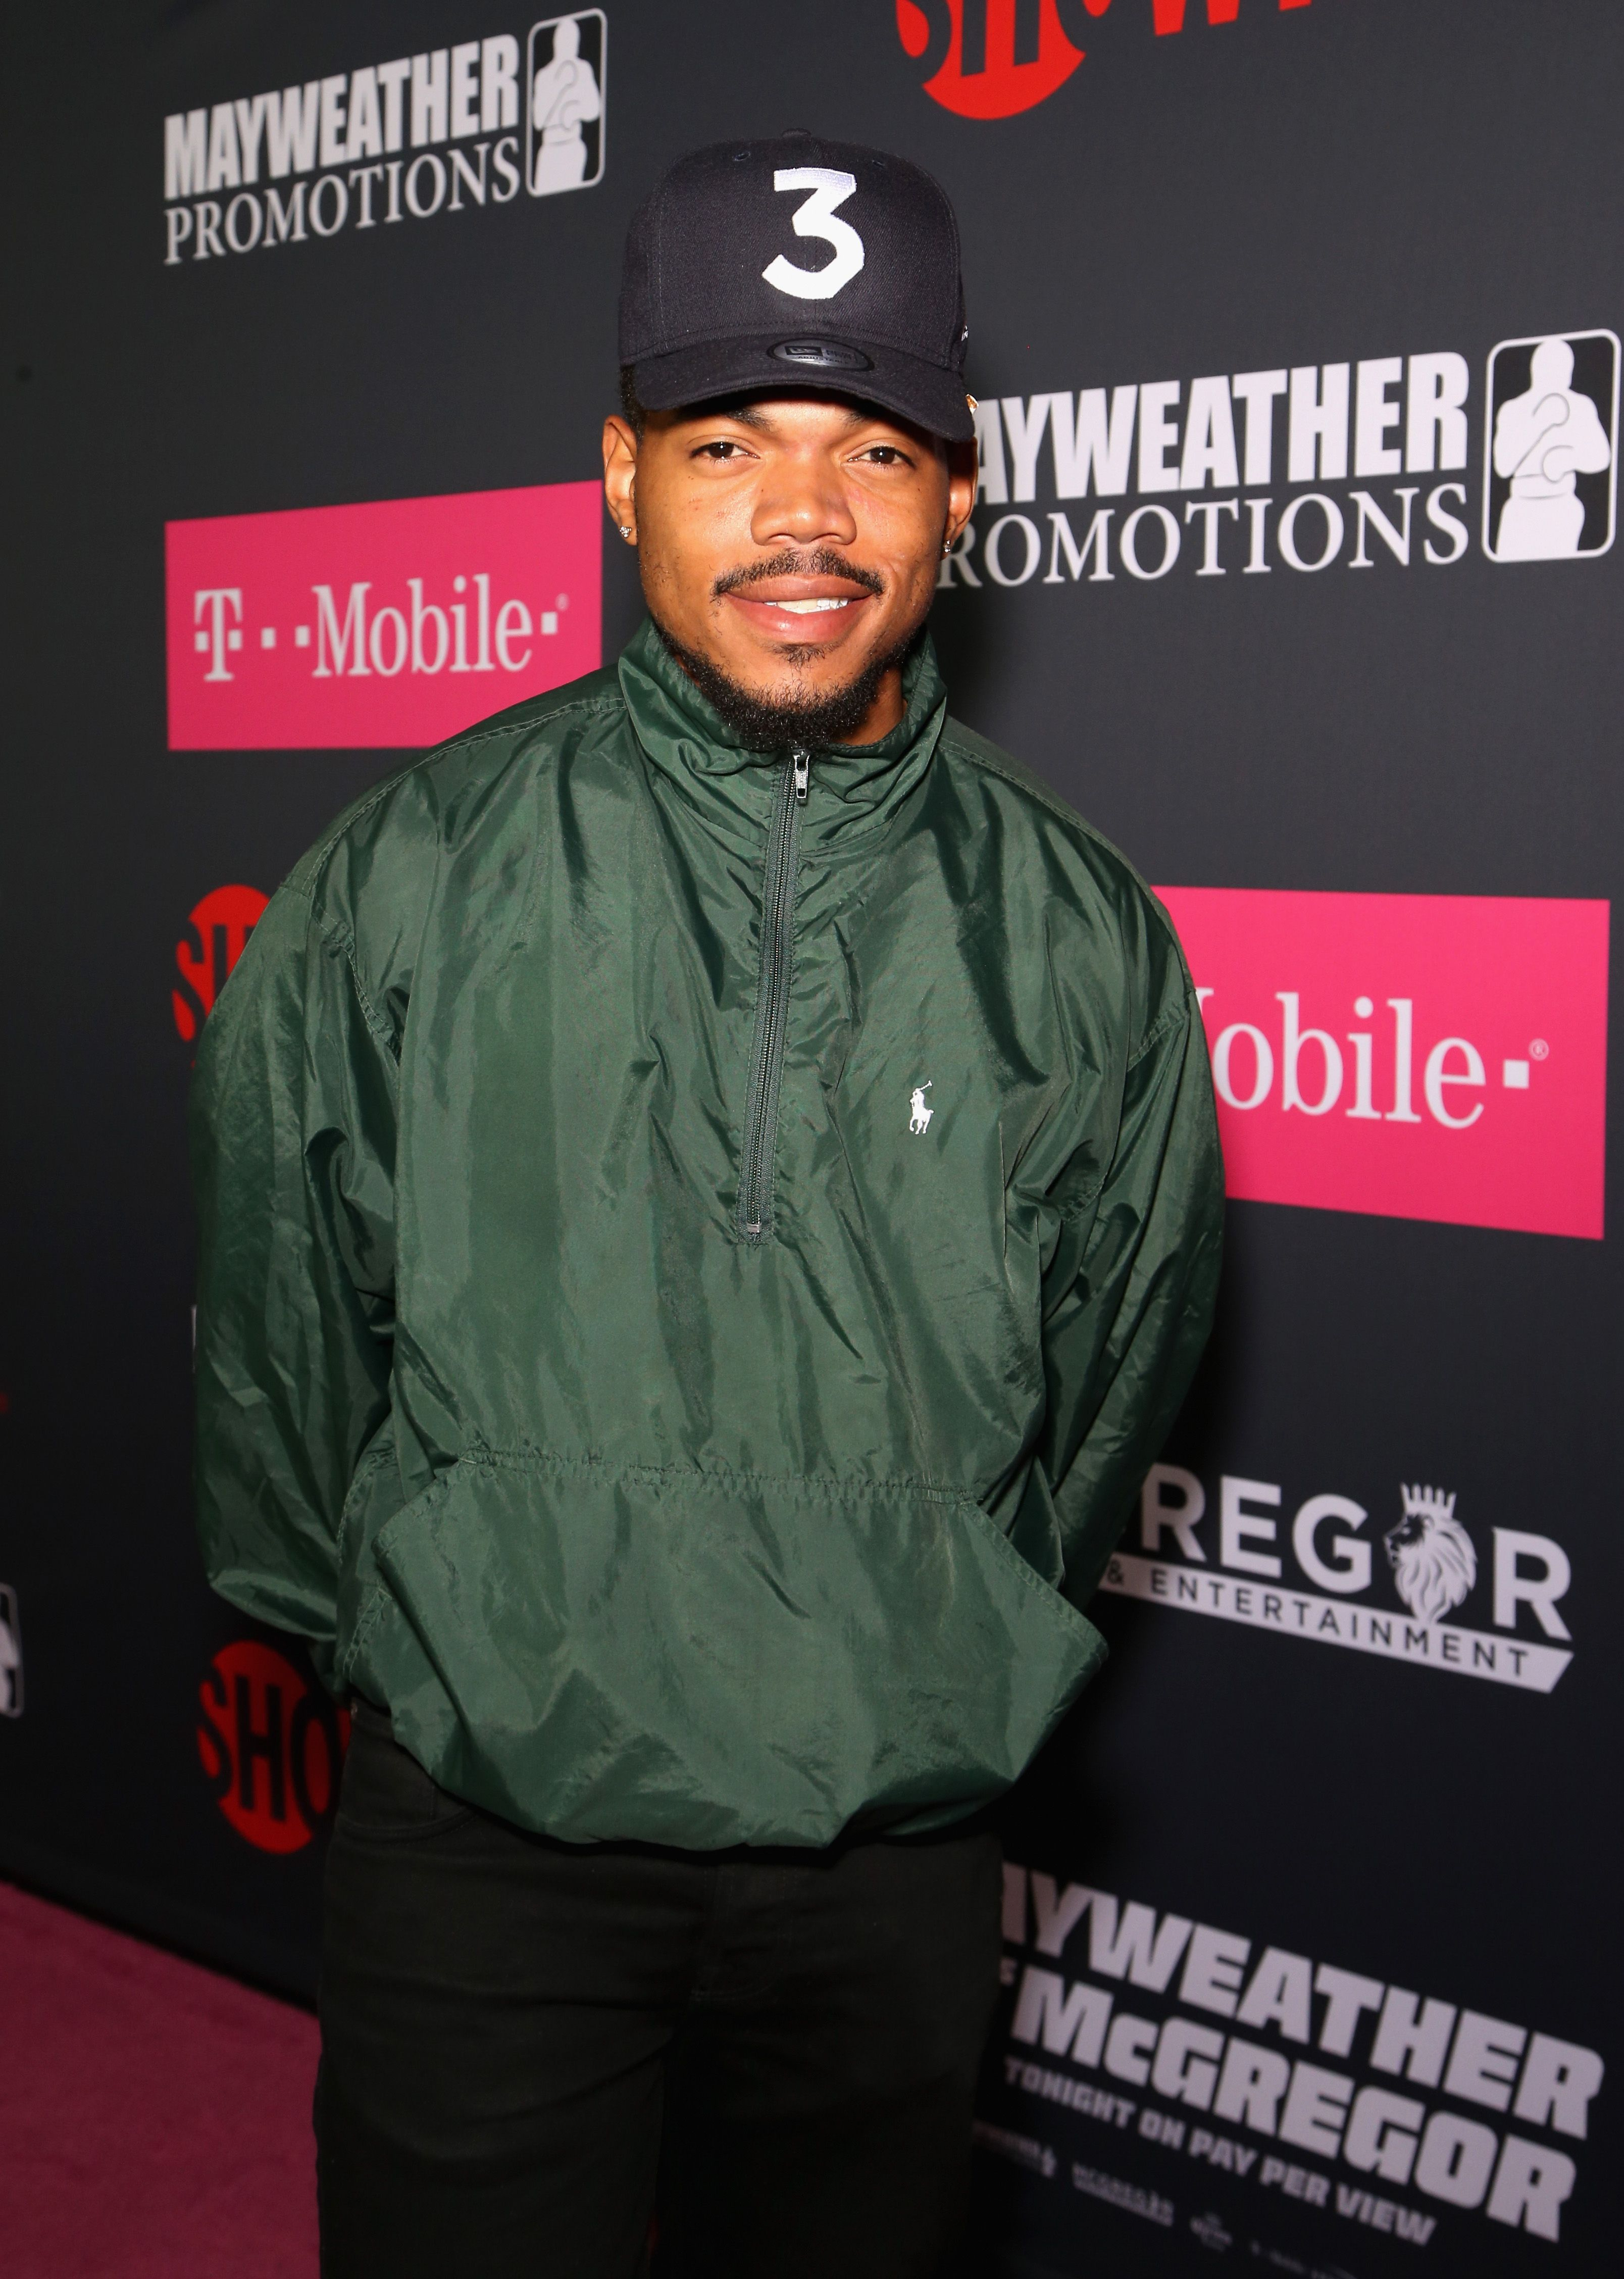 Chance The Rapper arrives at the Showtime, WME IME and Mayweather Promotions VIP Pre-Fight Party for Mayweather vs. McGregor on August 26, 2017 | Photo: Getty Images